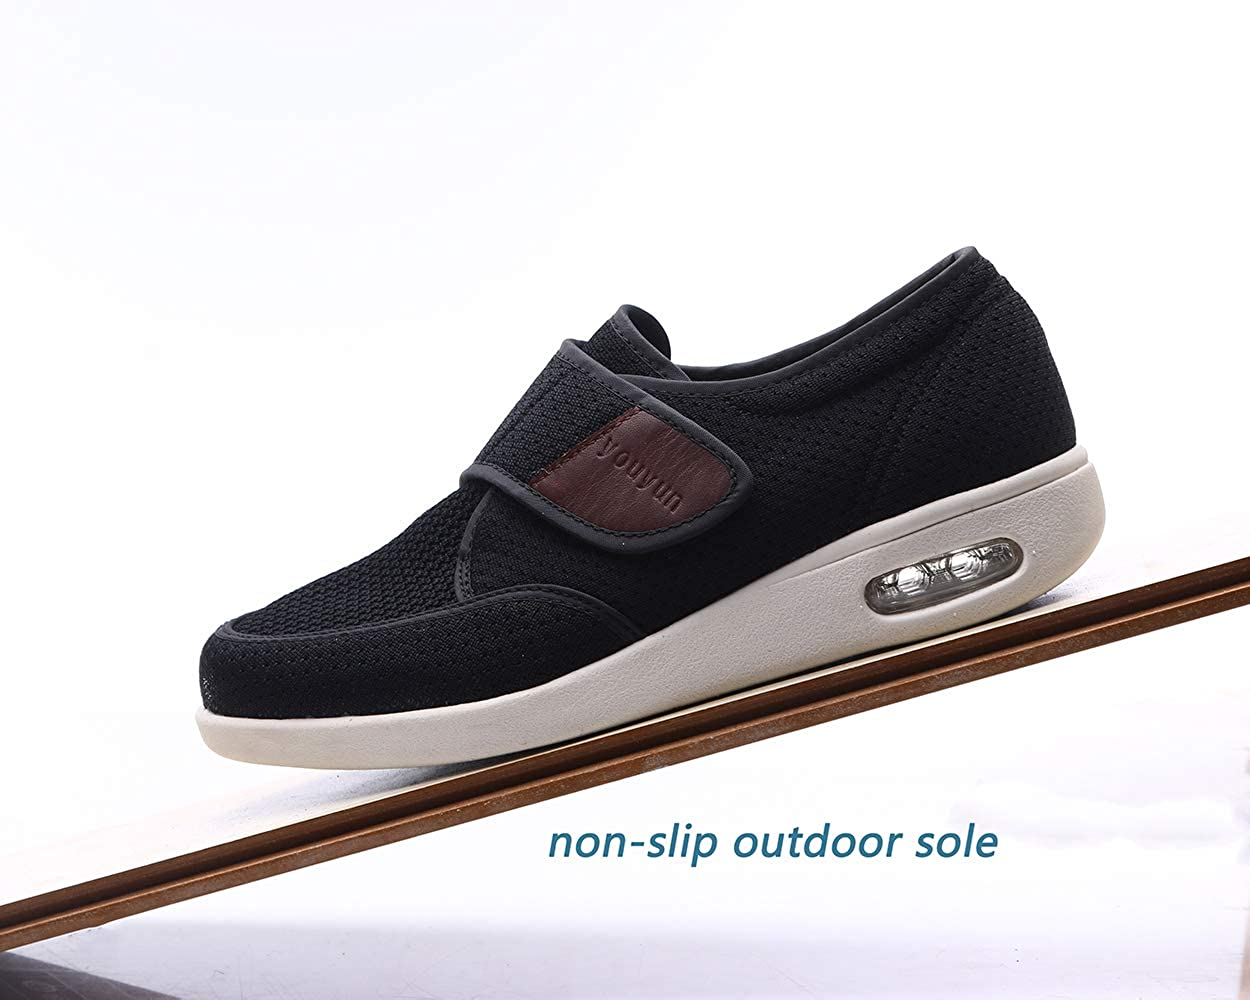   RYLHL Mens Diabetic Walking Shoes Adjustable Outdoor Sneakers Recovery Easy On Off Strap Wide Width Slippers Comfort for Seniors Elderly   Walking